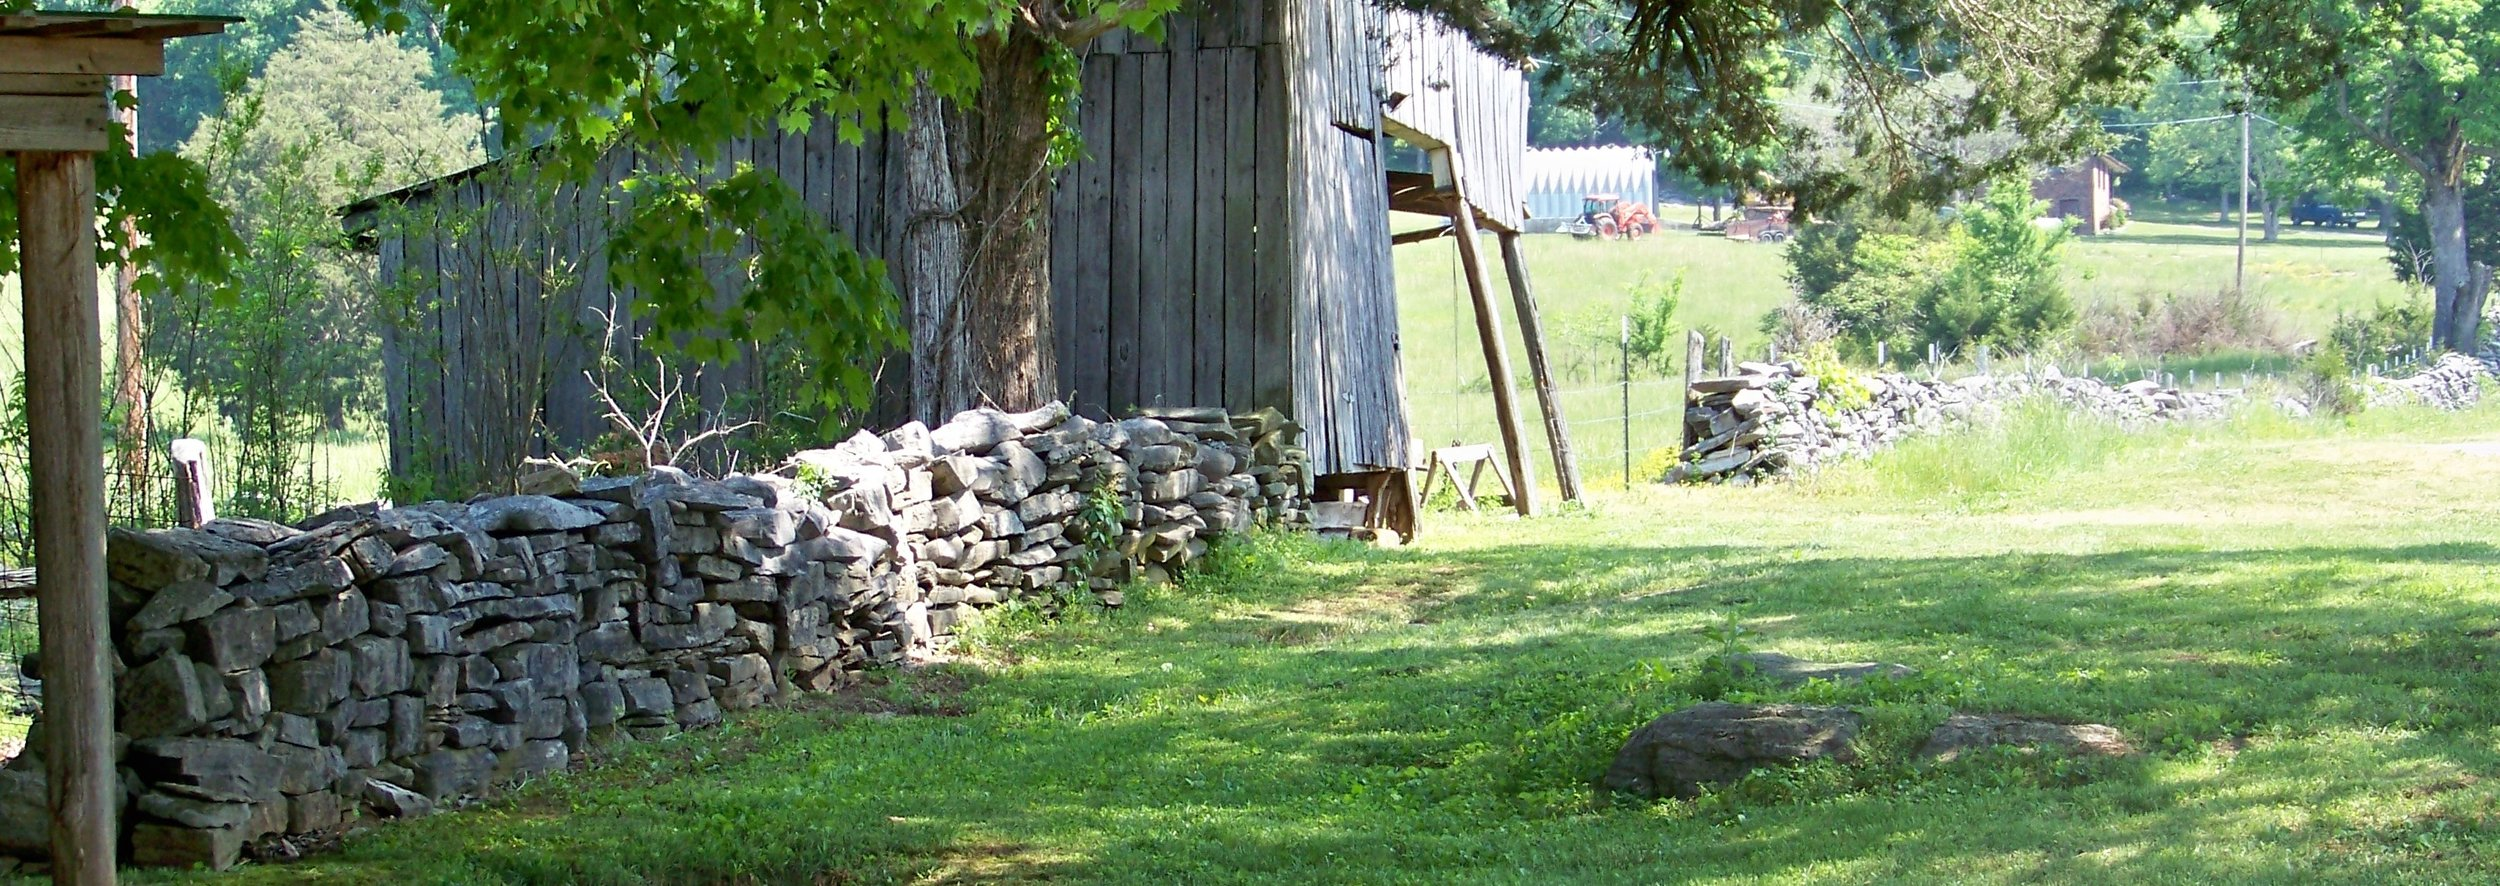 Rock Wall at The Henry Home in Sequatchie Valley